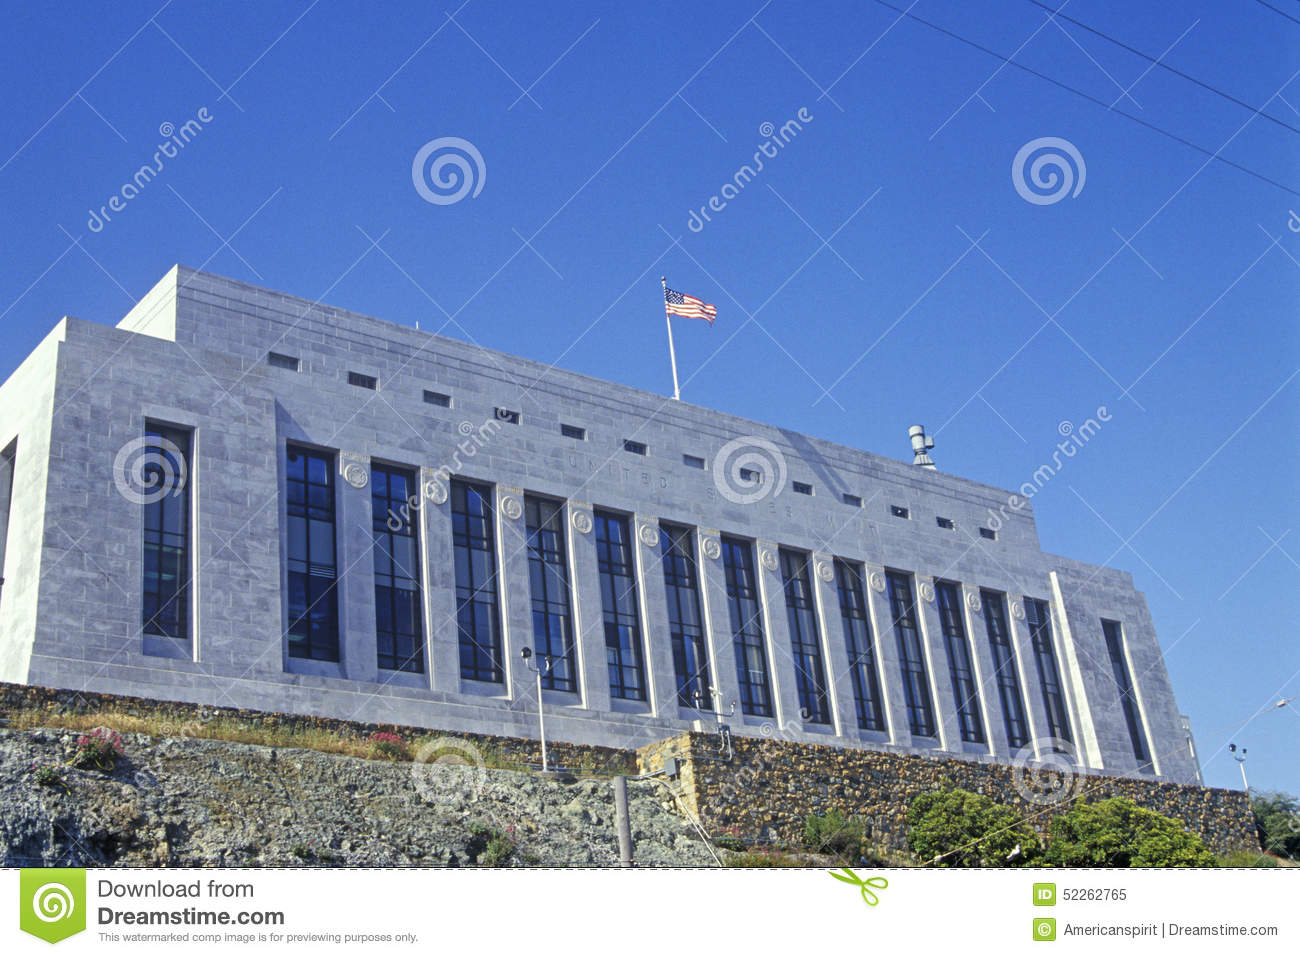 United States Mint in San Francisco, California